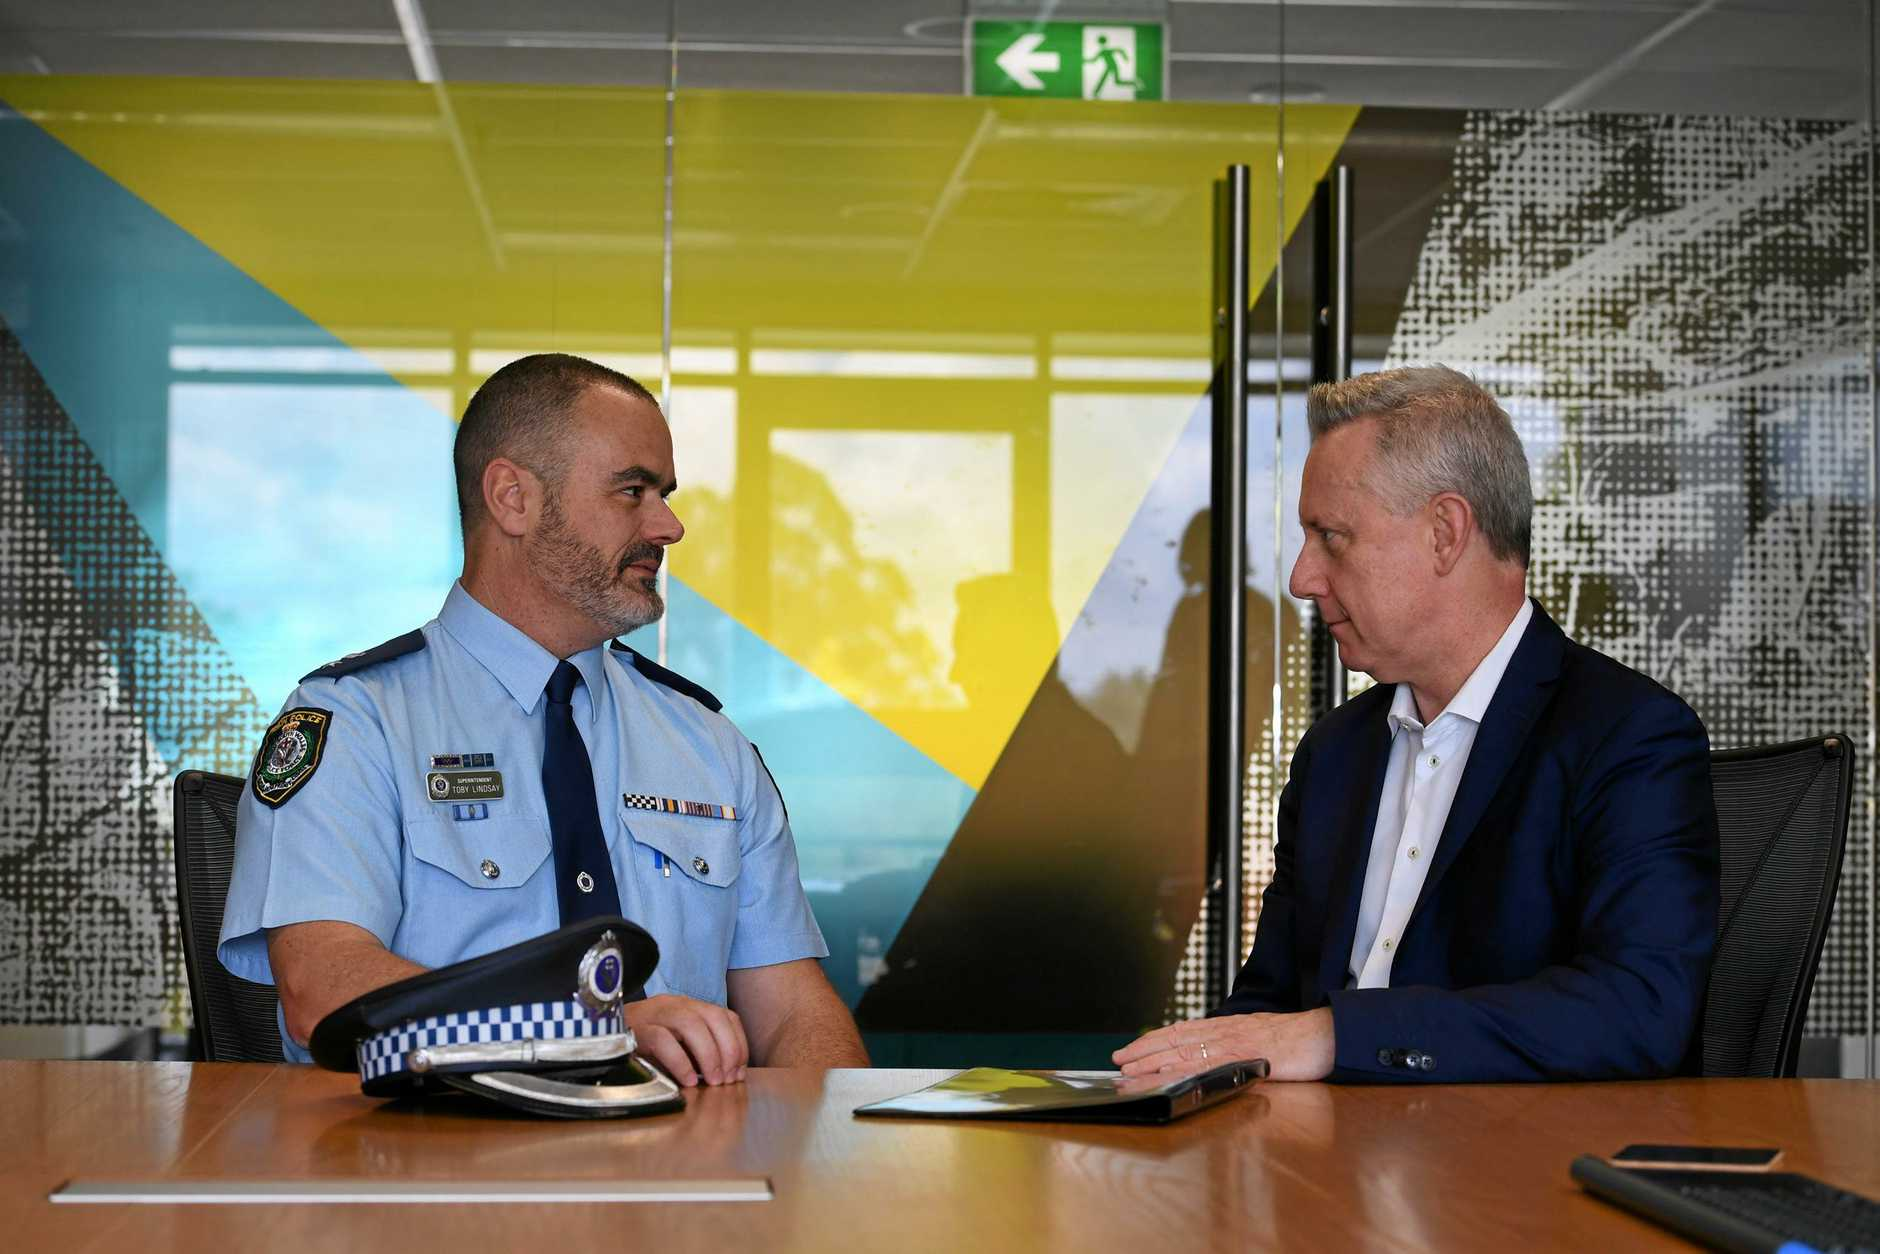 Southern Cross University vice chancellor and president Professor Adam Shoemaker and Richmond Police District Commander Superindendent Toby Lindsay discuss the lock down of Southern Cross University which occured on Tuesday afternoon.